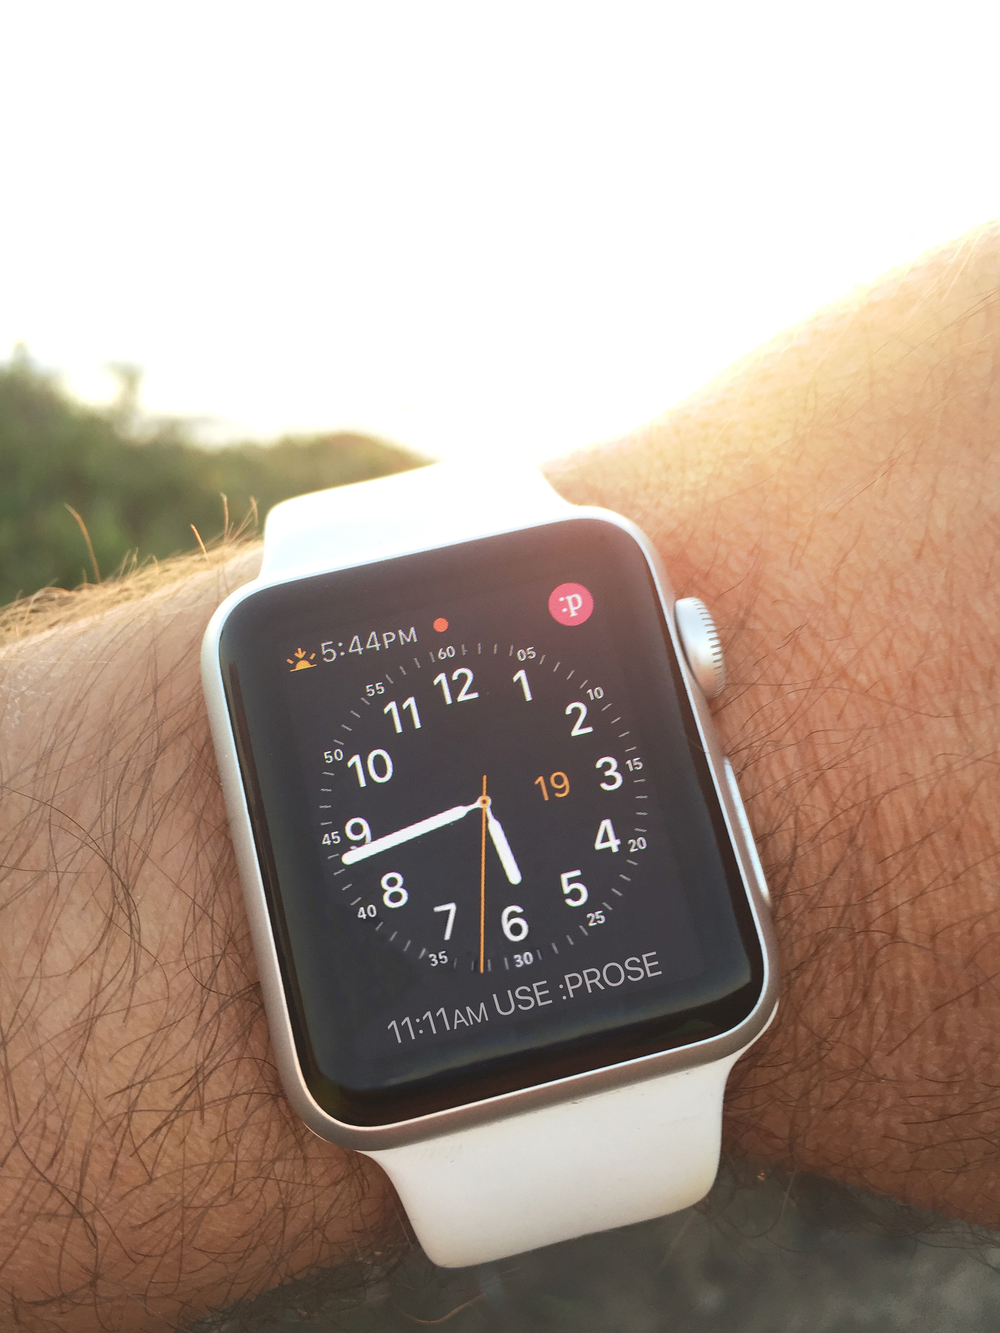 Smartstones :prose on Apple Watch. Quick launcher icon available on clock face.